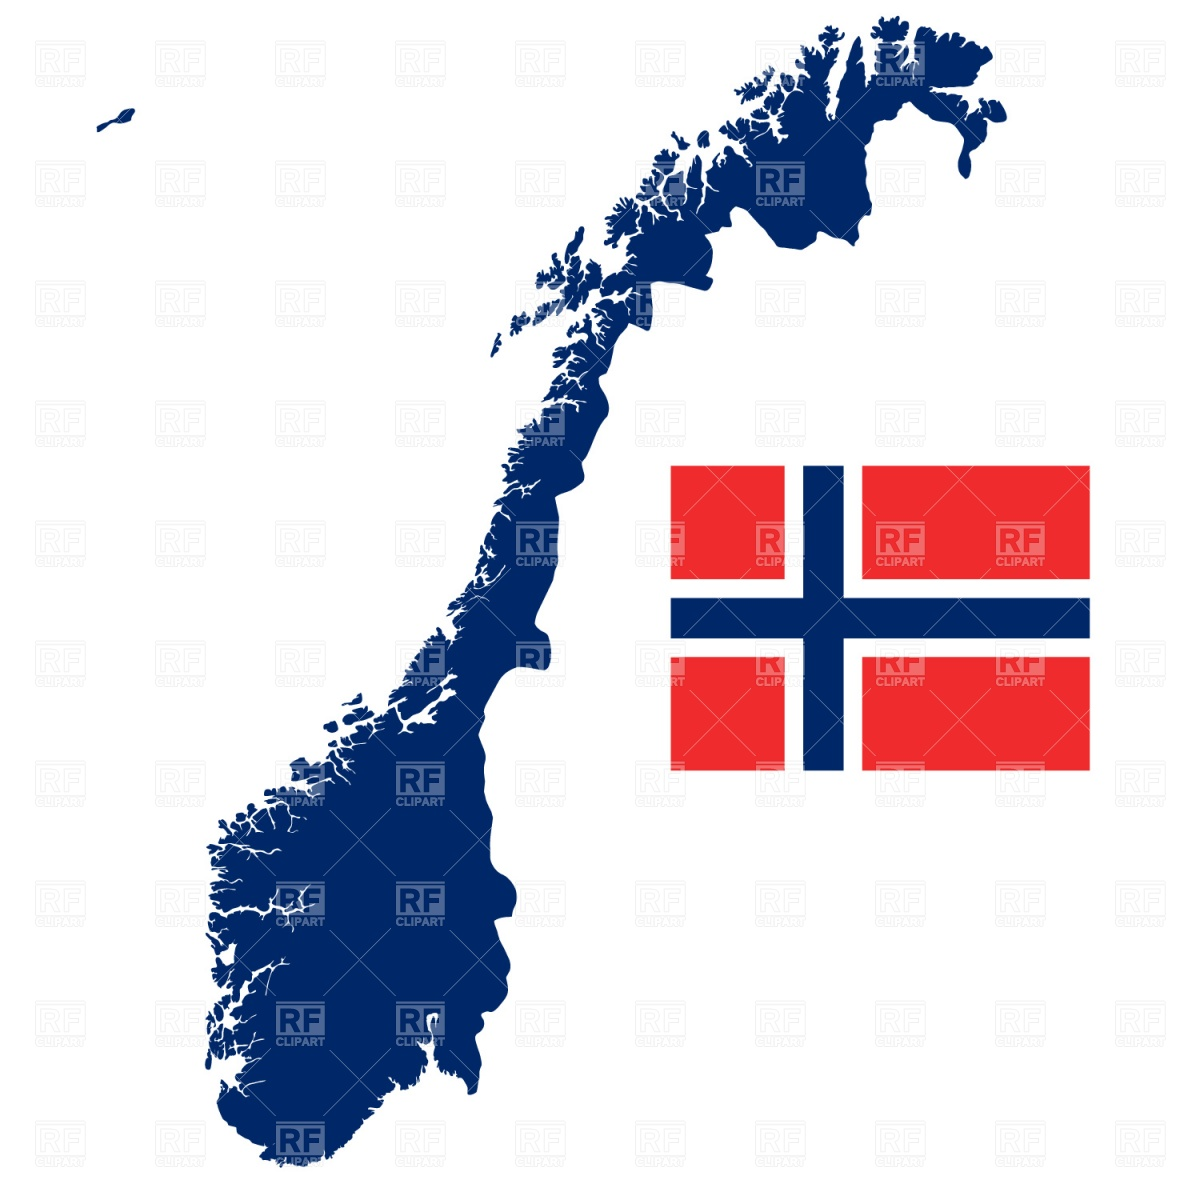 Free norwegian clipart clipart freeuse library Norwegian Clipart | Clipart Panda - Free Clipart Images clipart freeuse library